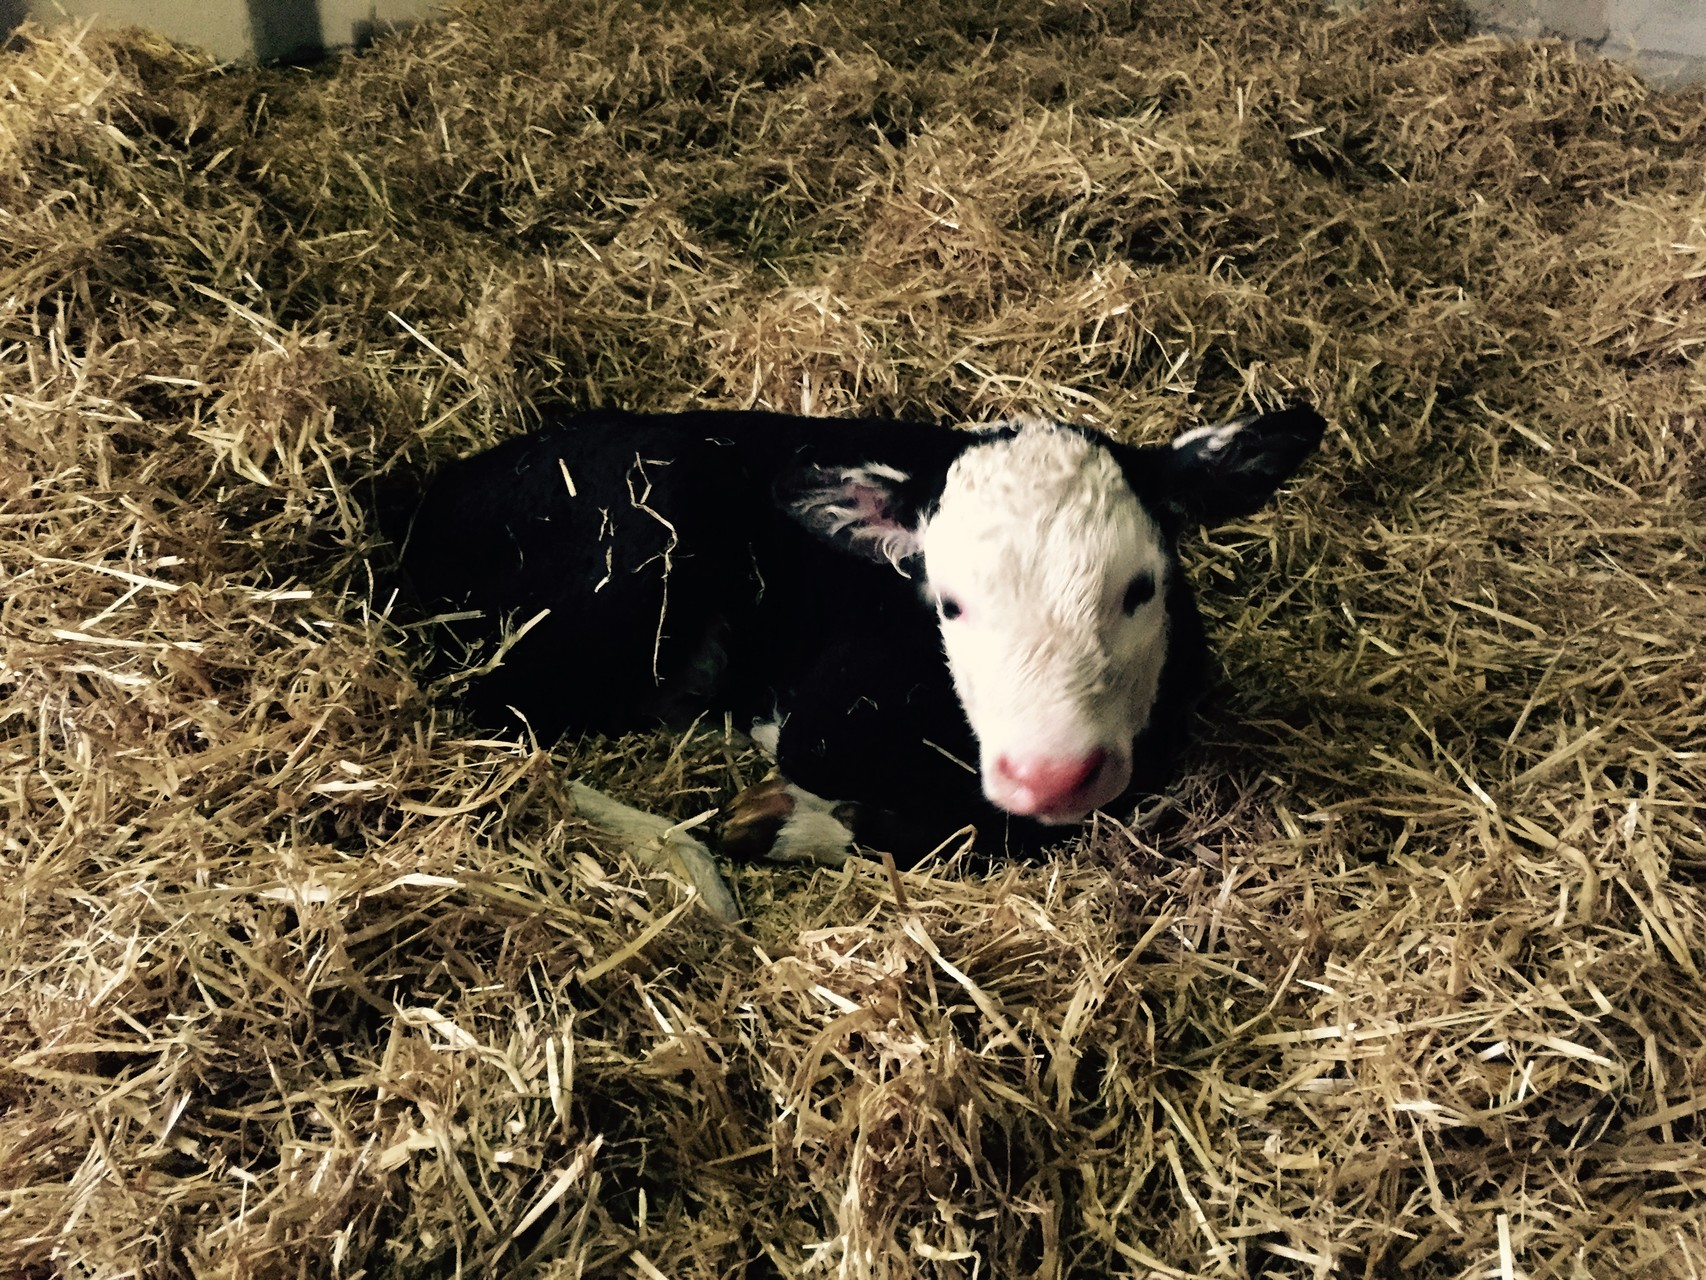 Ribbon, a very cuddly calf